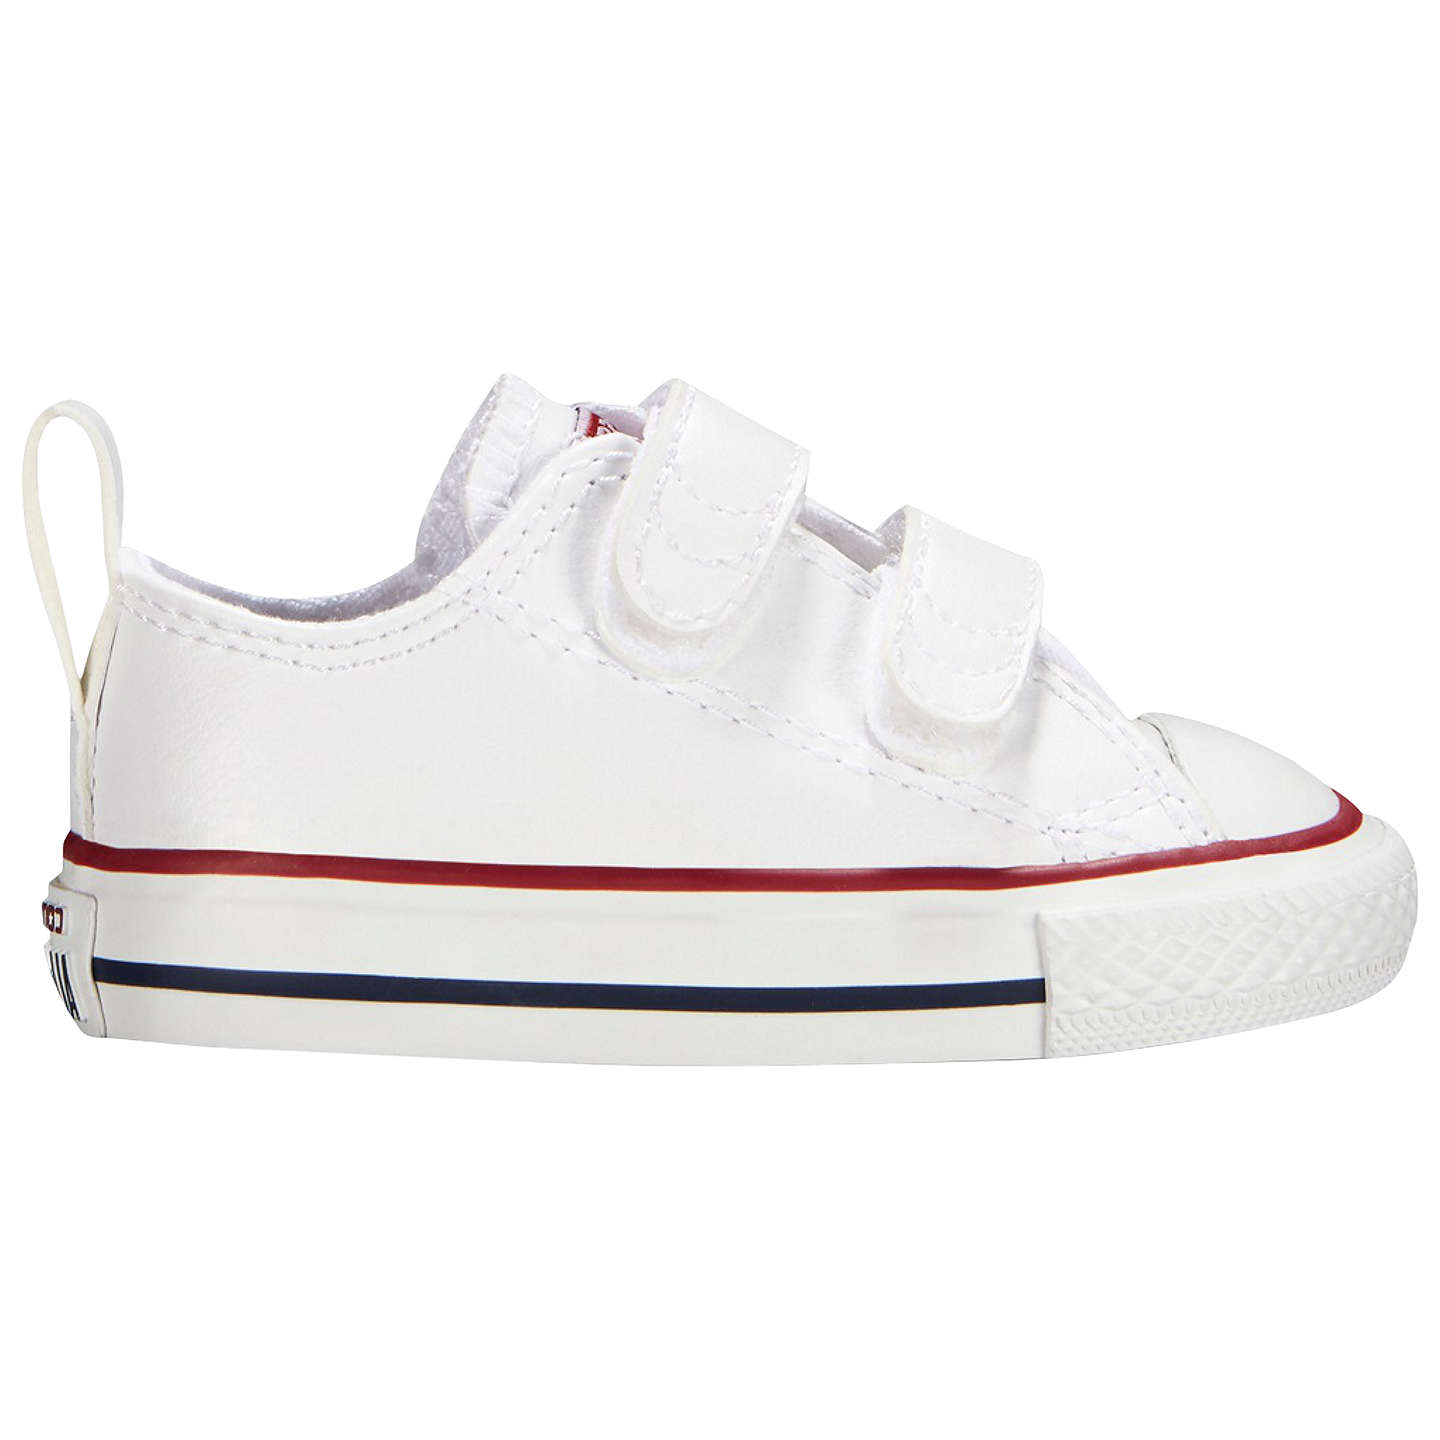 Converse - White 'Chuck Taylor' Rip Tape trainers - UK 7 (RRP£50)